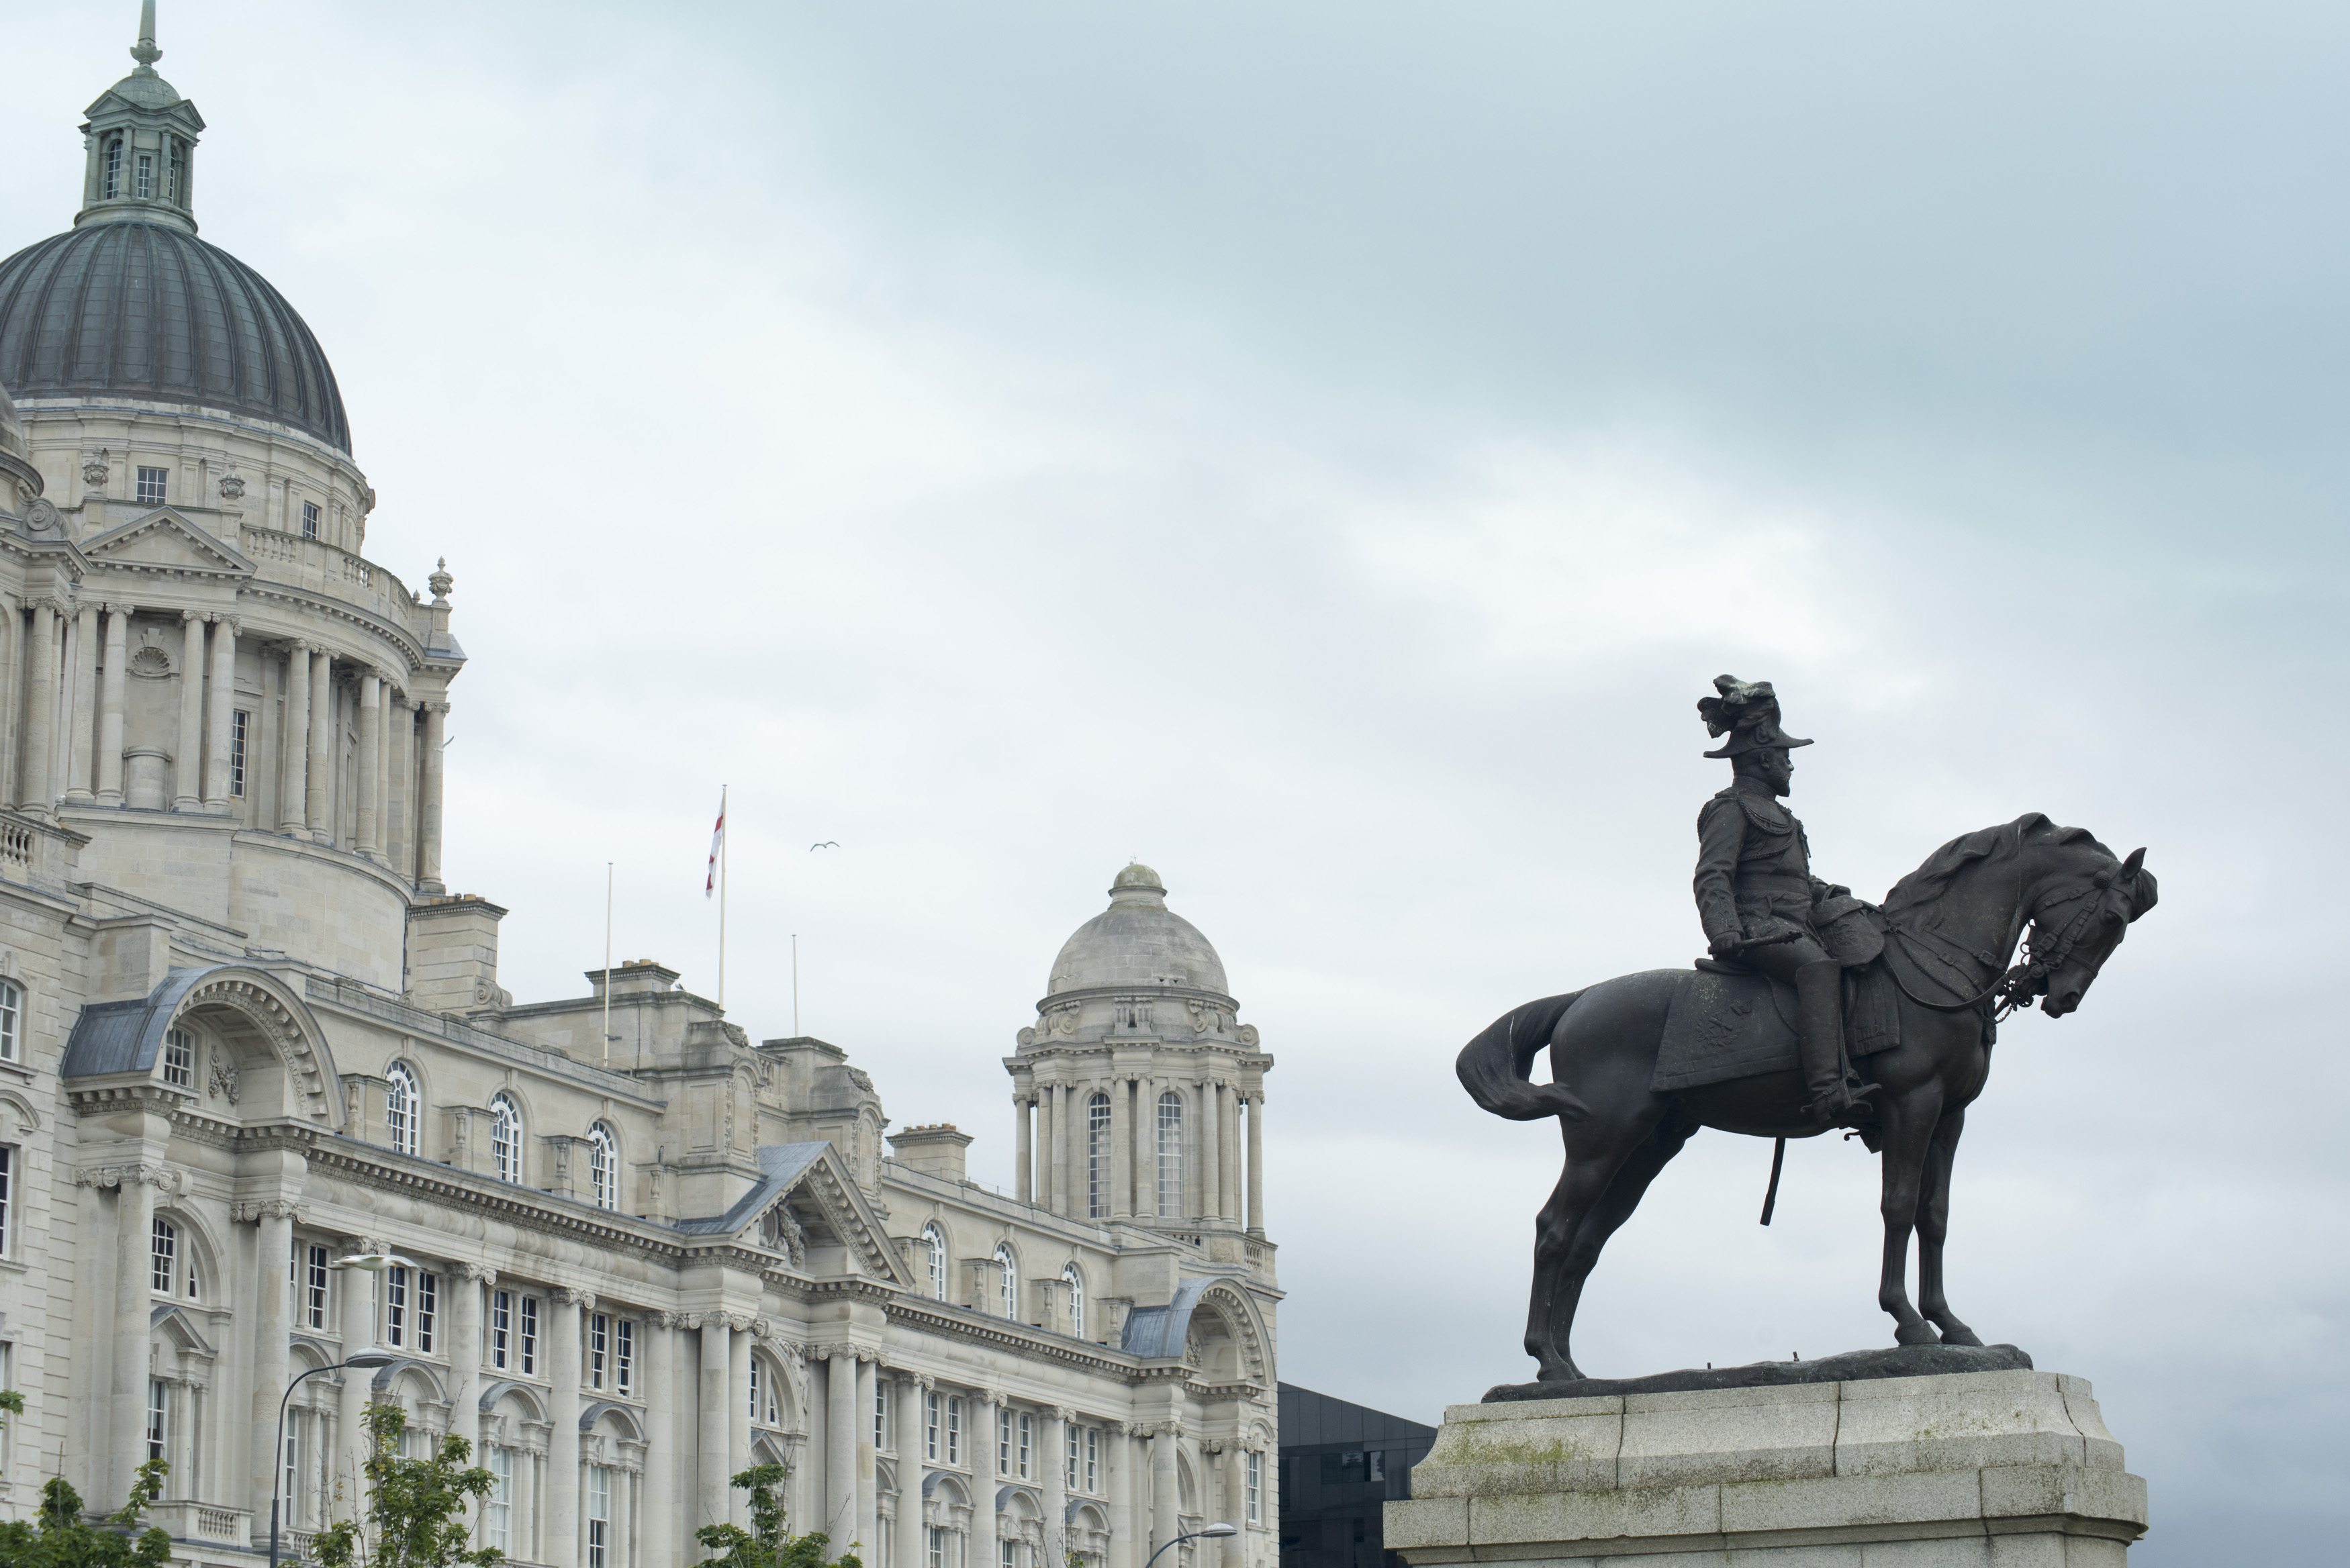 Statue of Edward VII on horse under overcast gray sky in Liverpool, United Kingdom. Includes copy space.